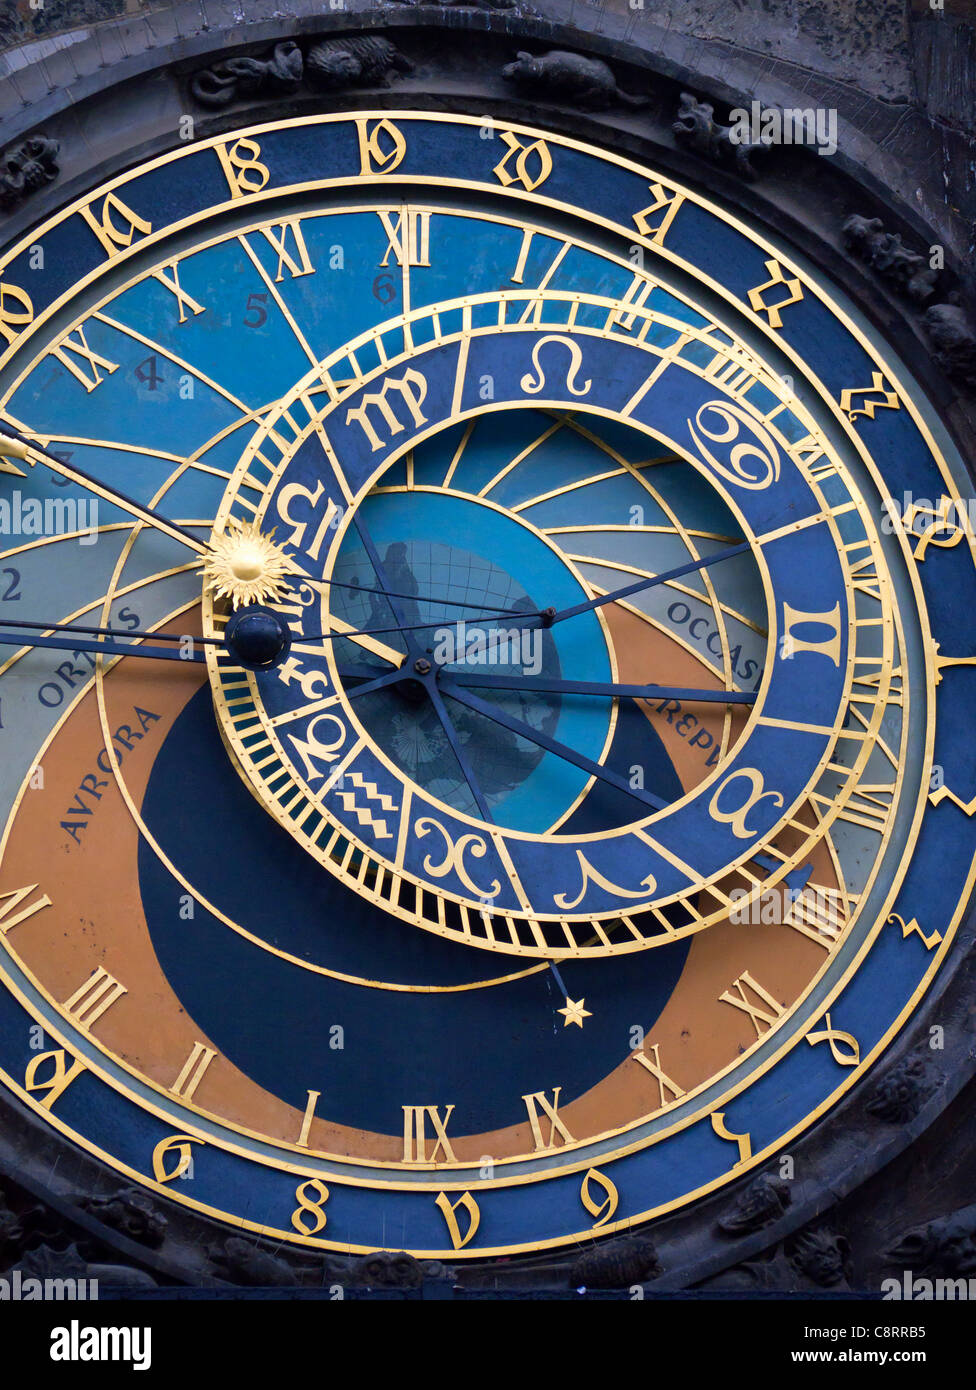 Detail of face of Astronomical Clock on town hall in Staromestske namesti or Old Town Square in Prague in Czech - Stock Image